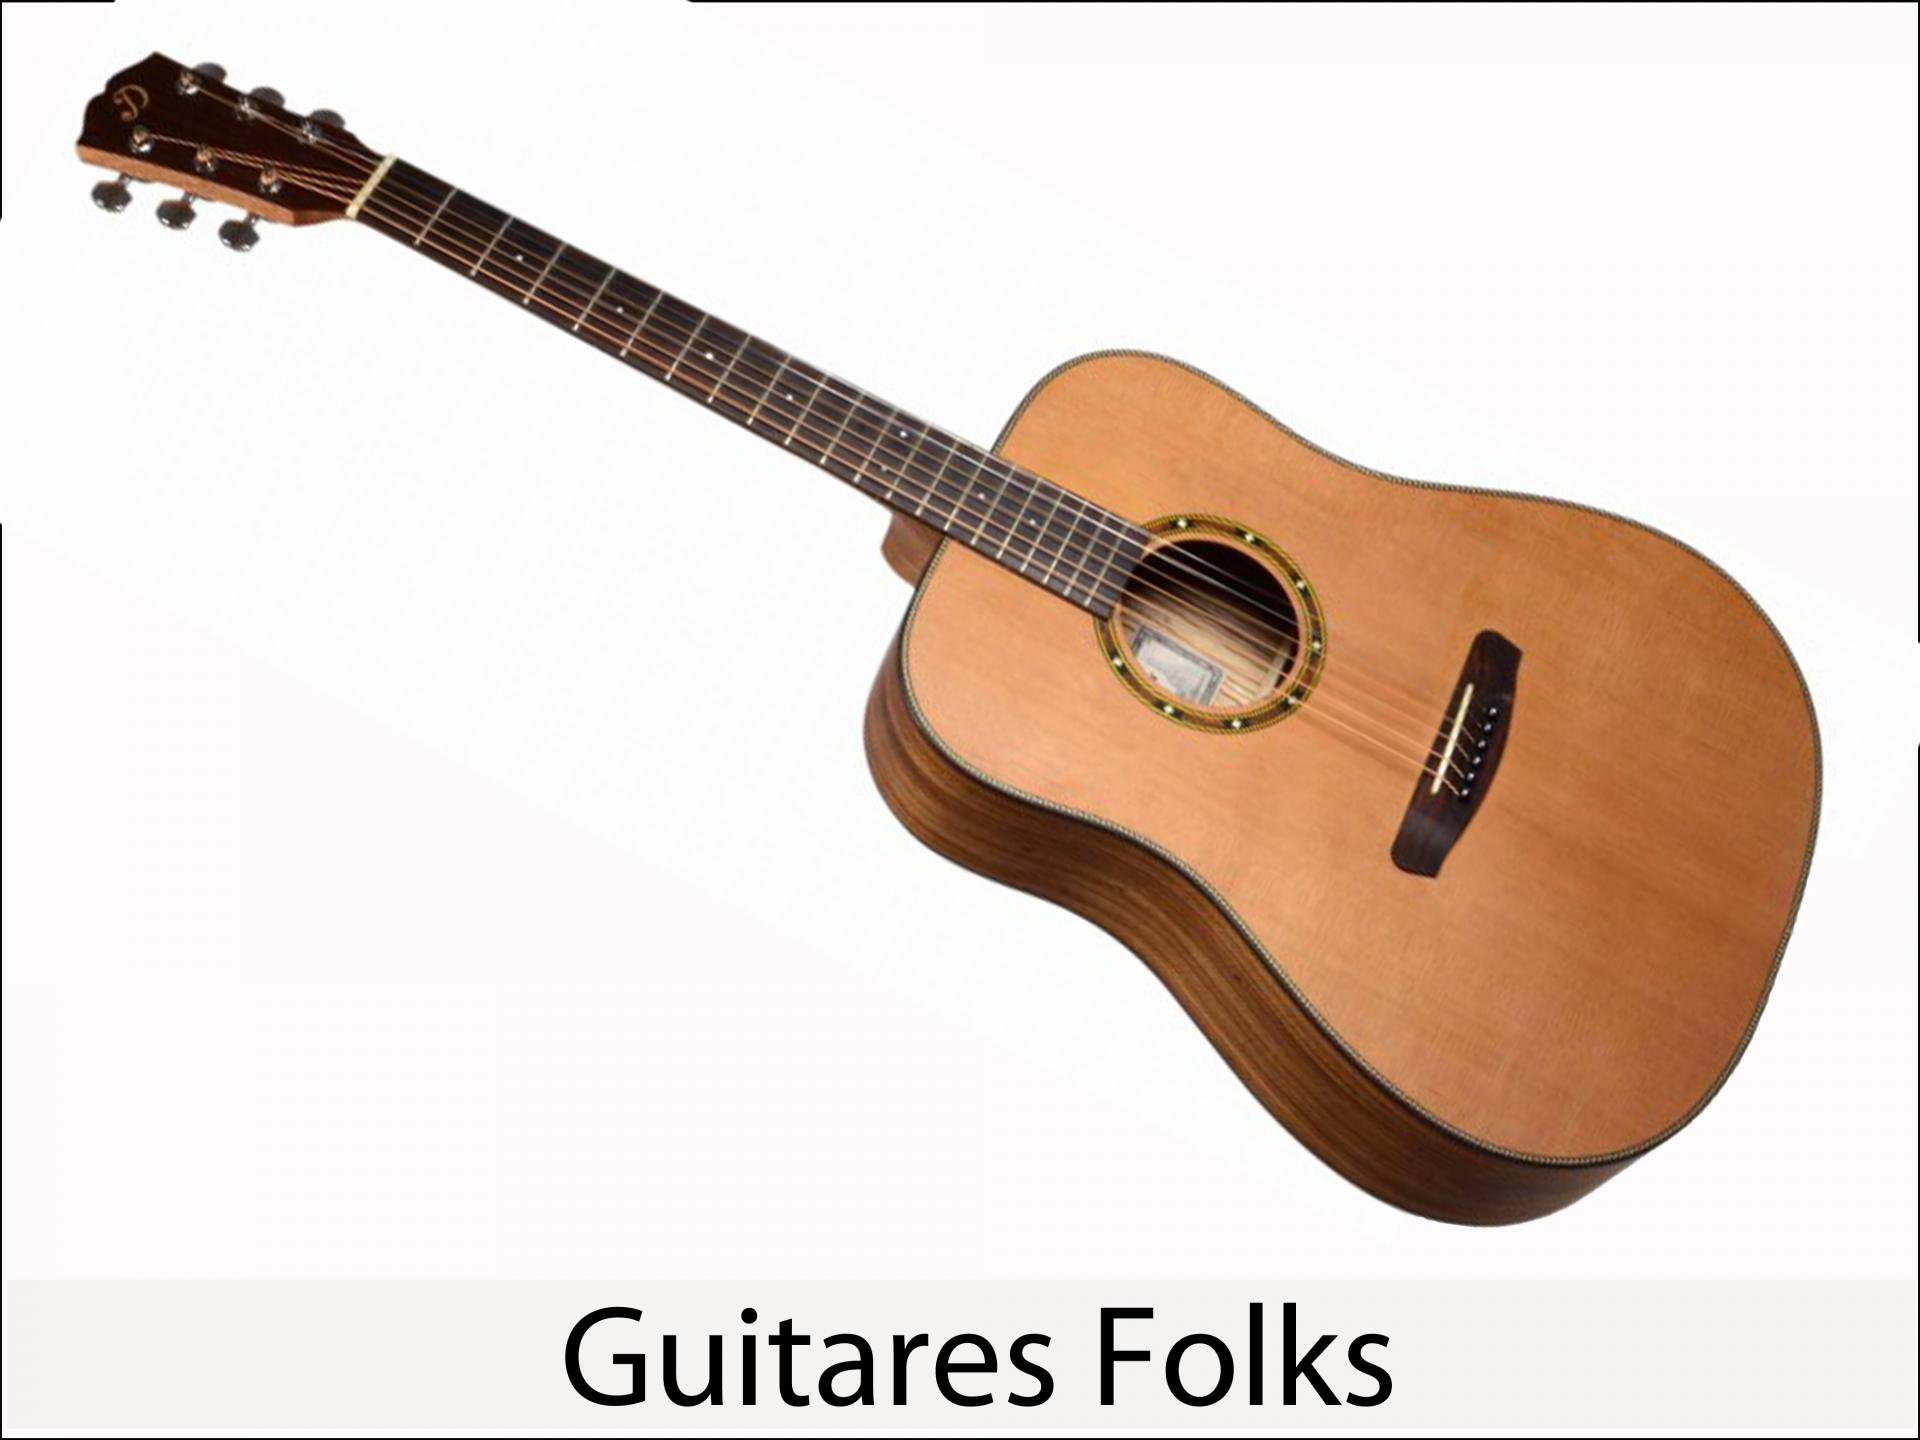 Acceuil carre guitares folks